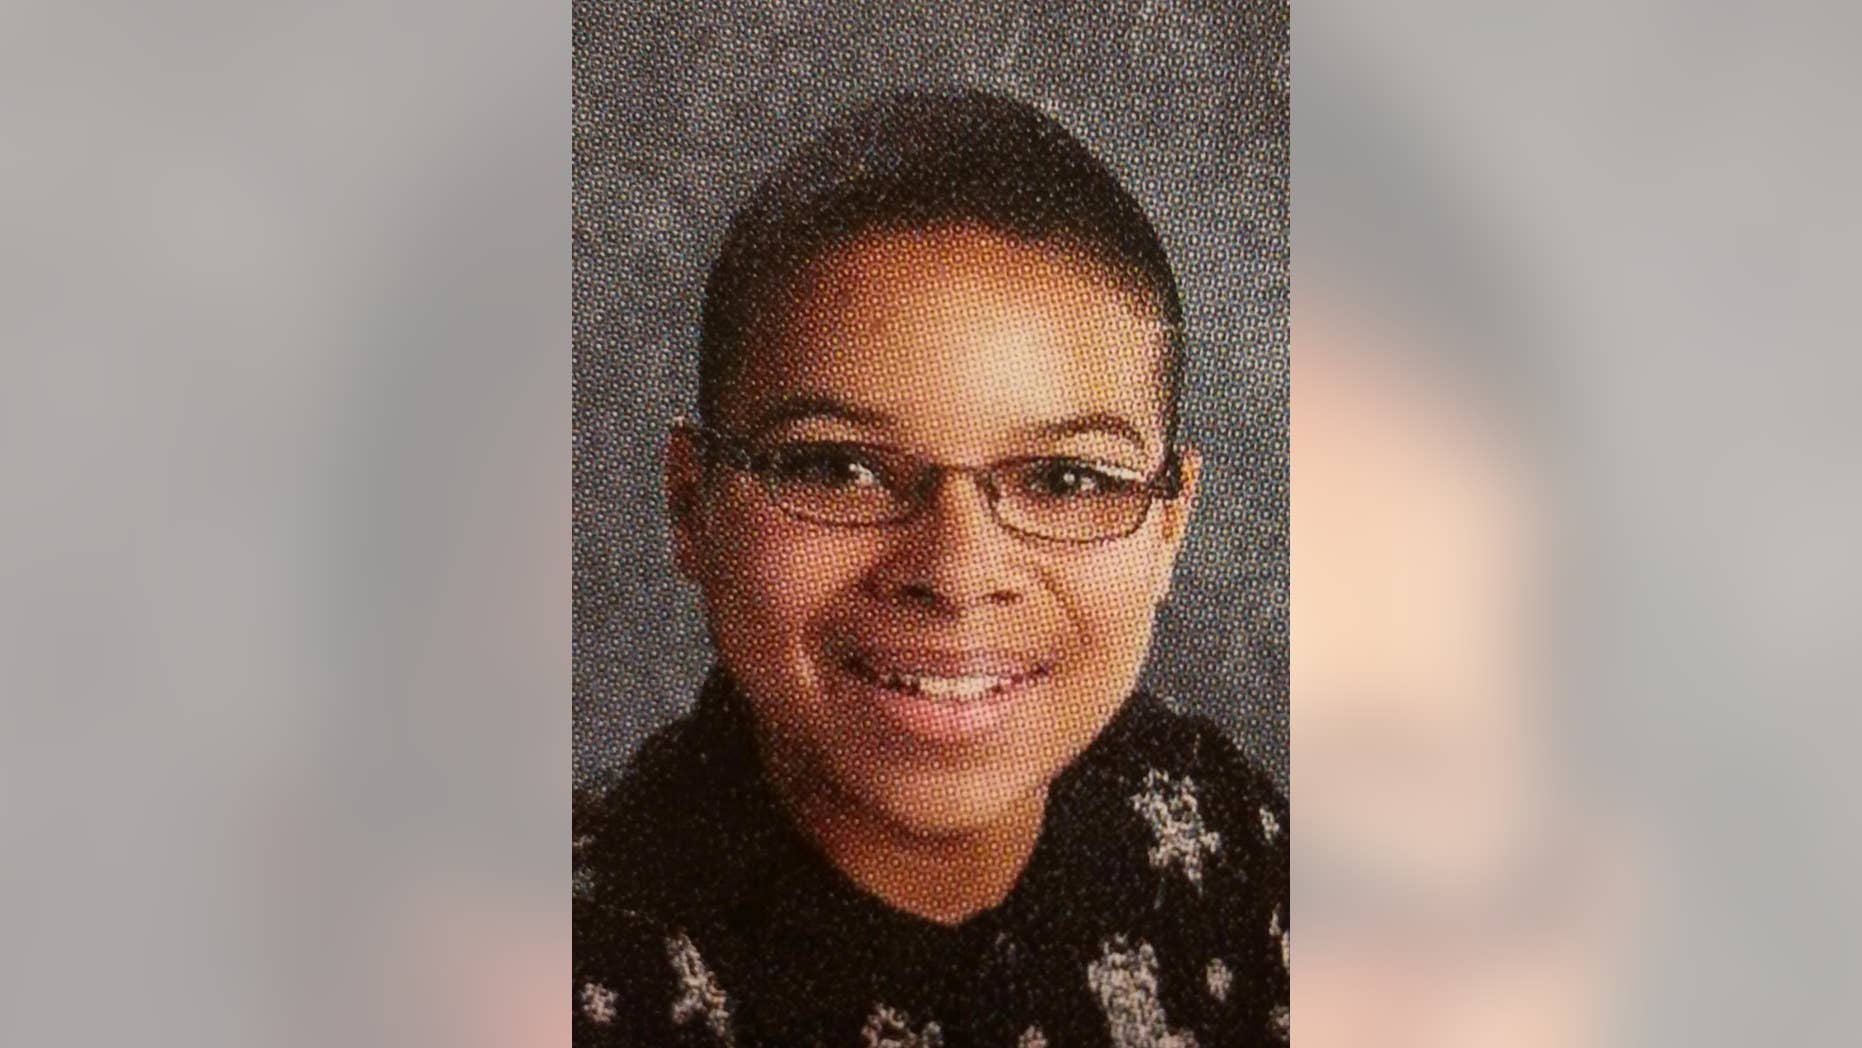 This 2010 yearbook photo provided by Topeka Public Schools from a Topeka West High School shows John Booker. Booker, accused of planning a suicide attack at Fort Riley, was arrested Friday, April 10, 2015, while trying to arm what he thought was a bomb near the Kansas military base as part of a plot to support the Islamic State group, federal prosecutors said. (AP Photo/Topeka Public Schools)